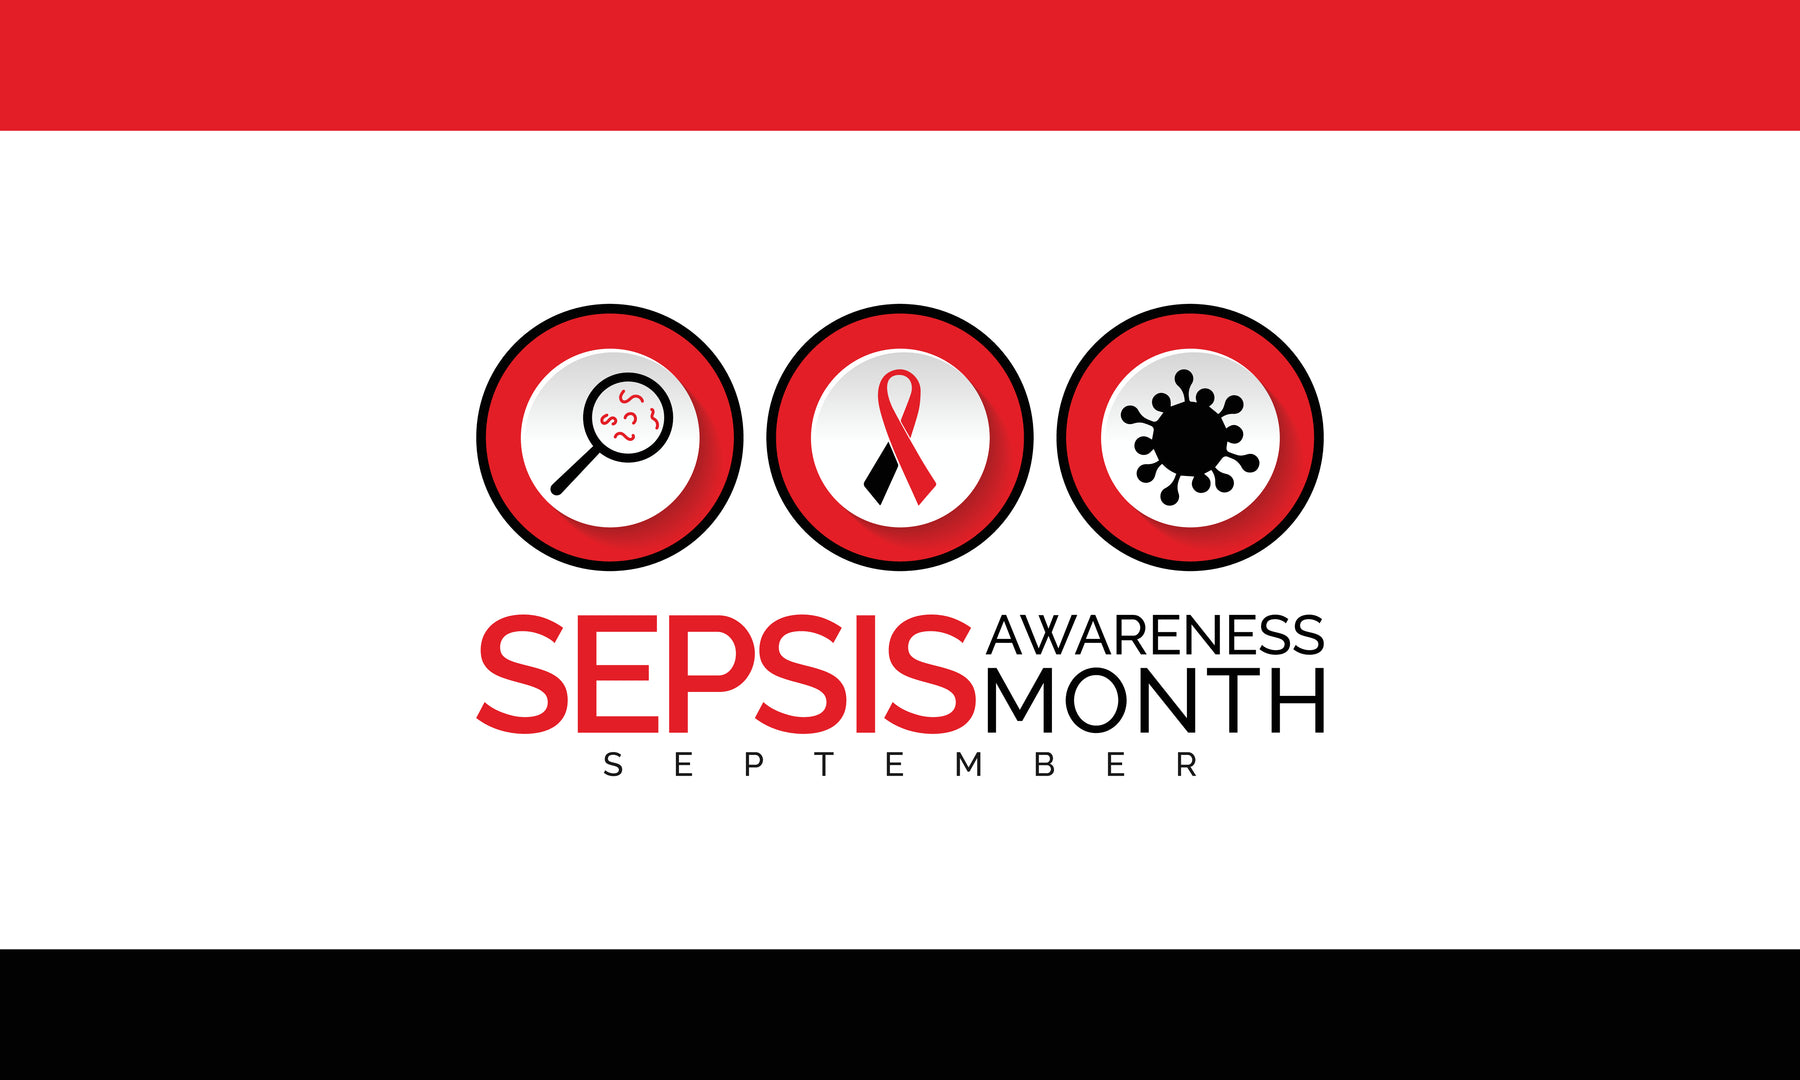 Sepsis Awareness Month